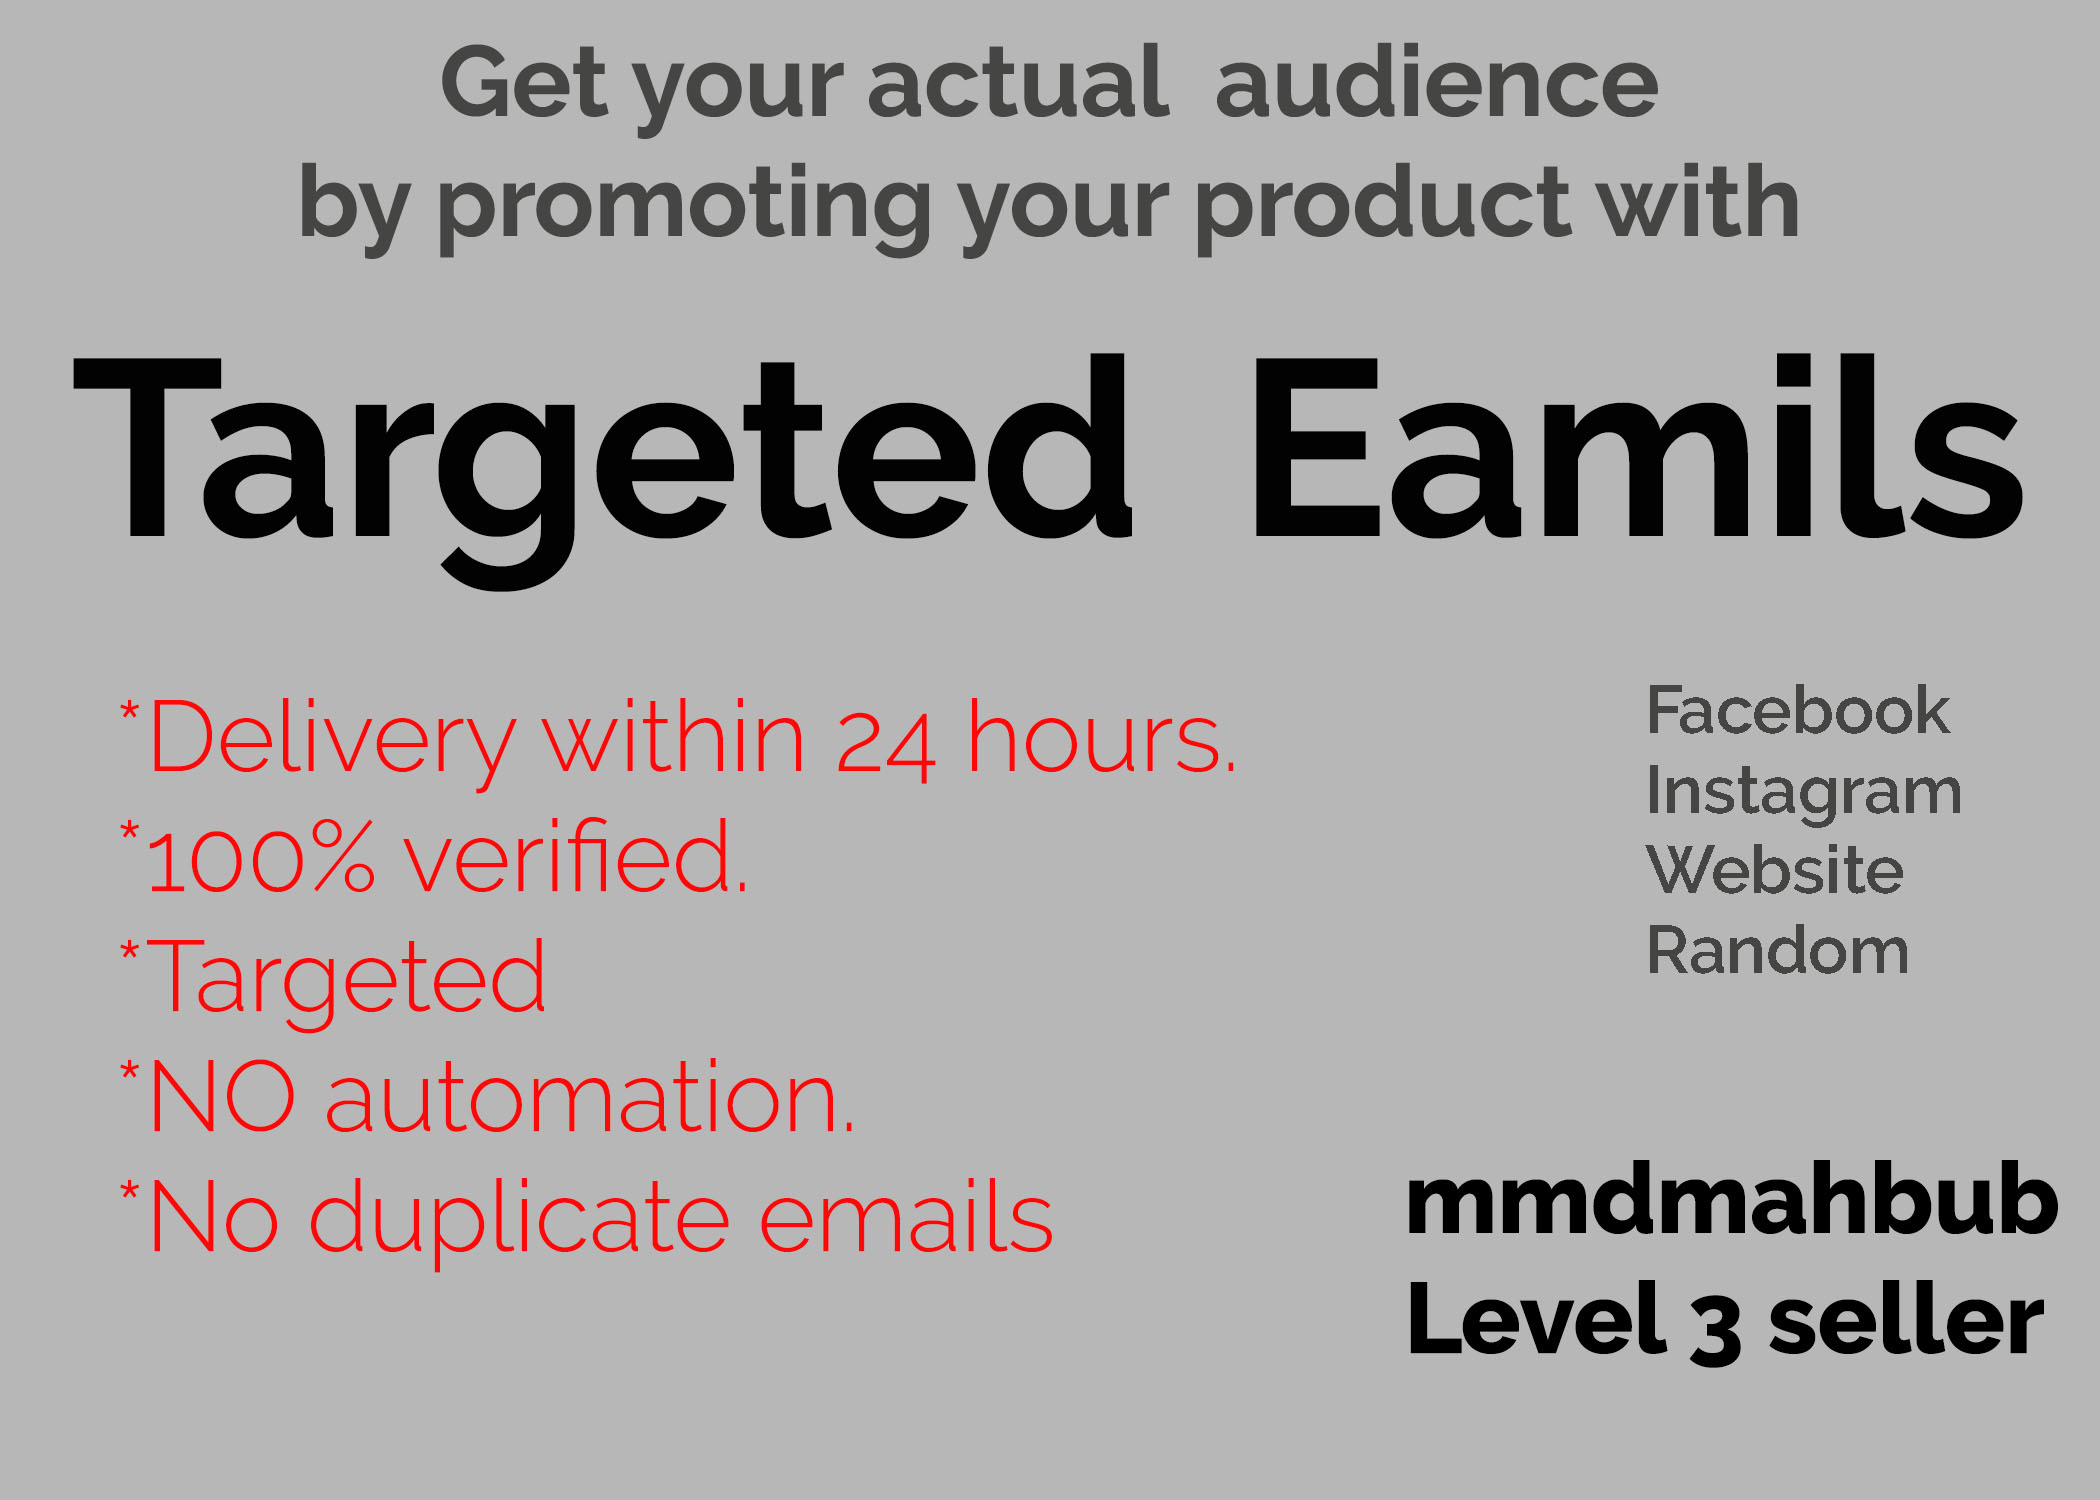 Get 5,000 targeted email leads